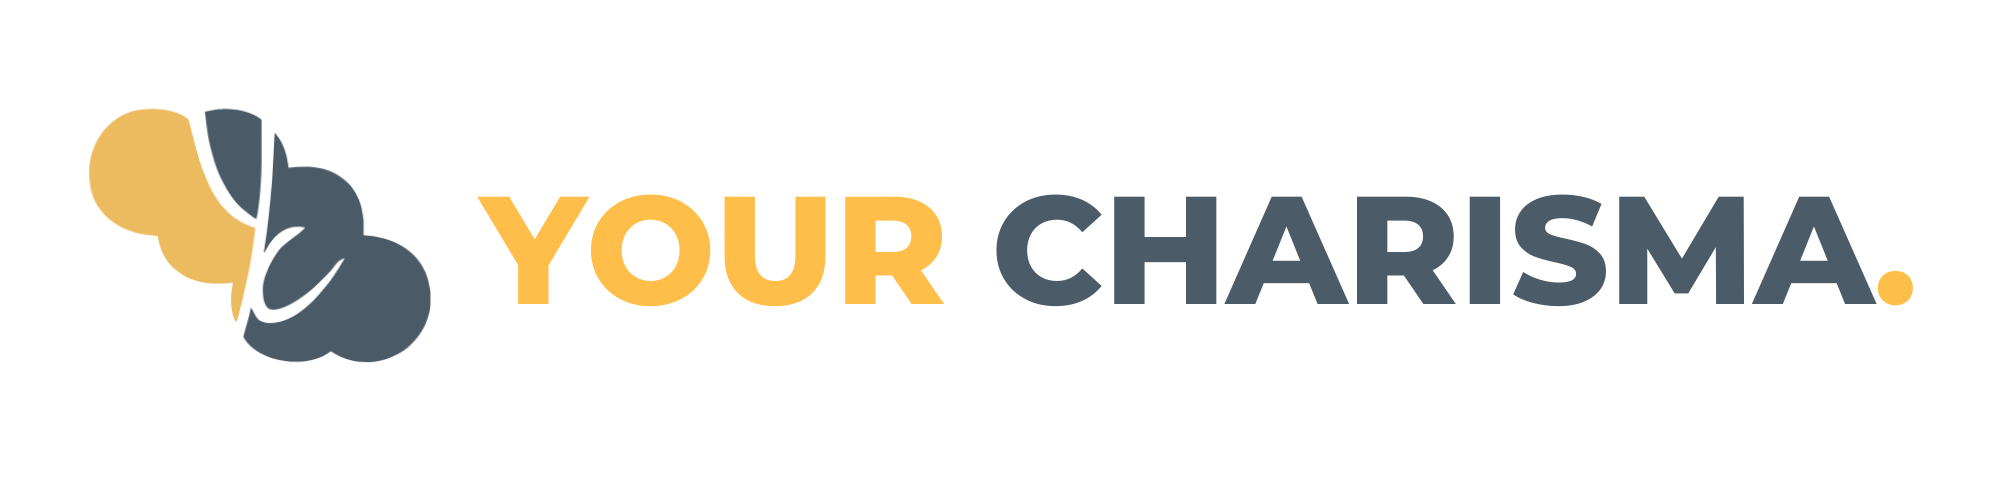 Your Charisma Banner